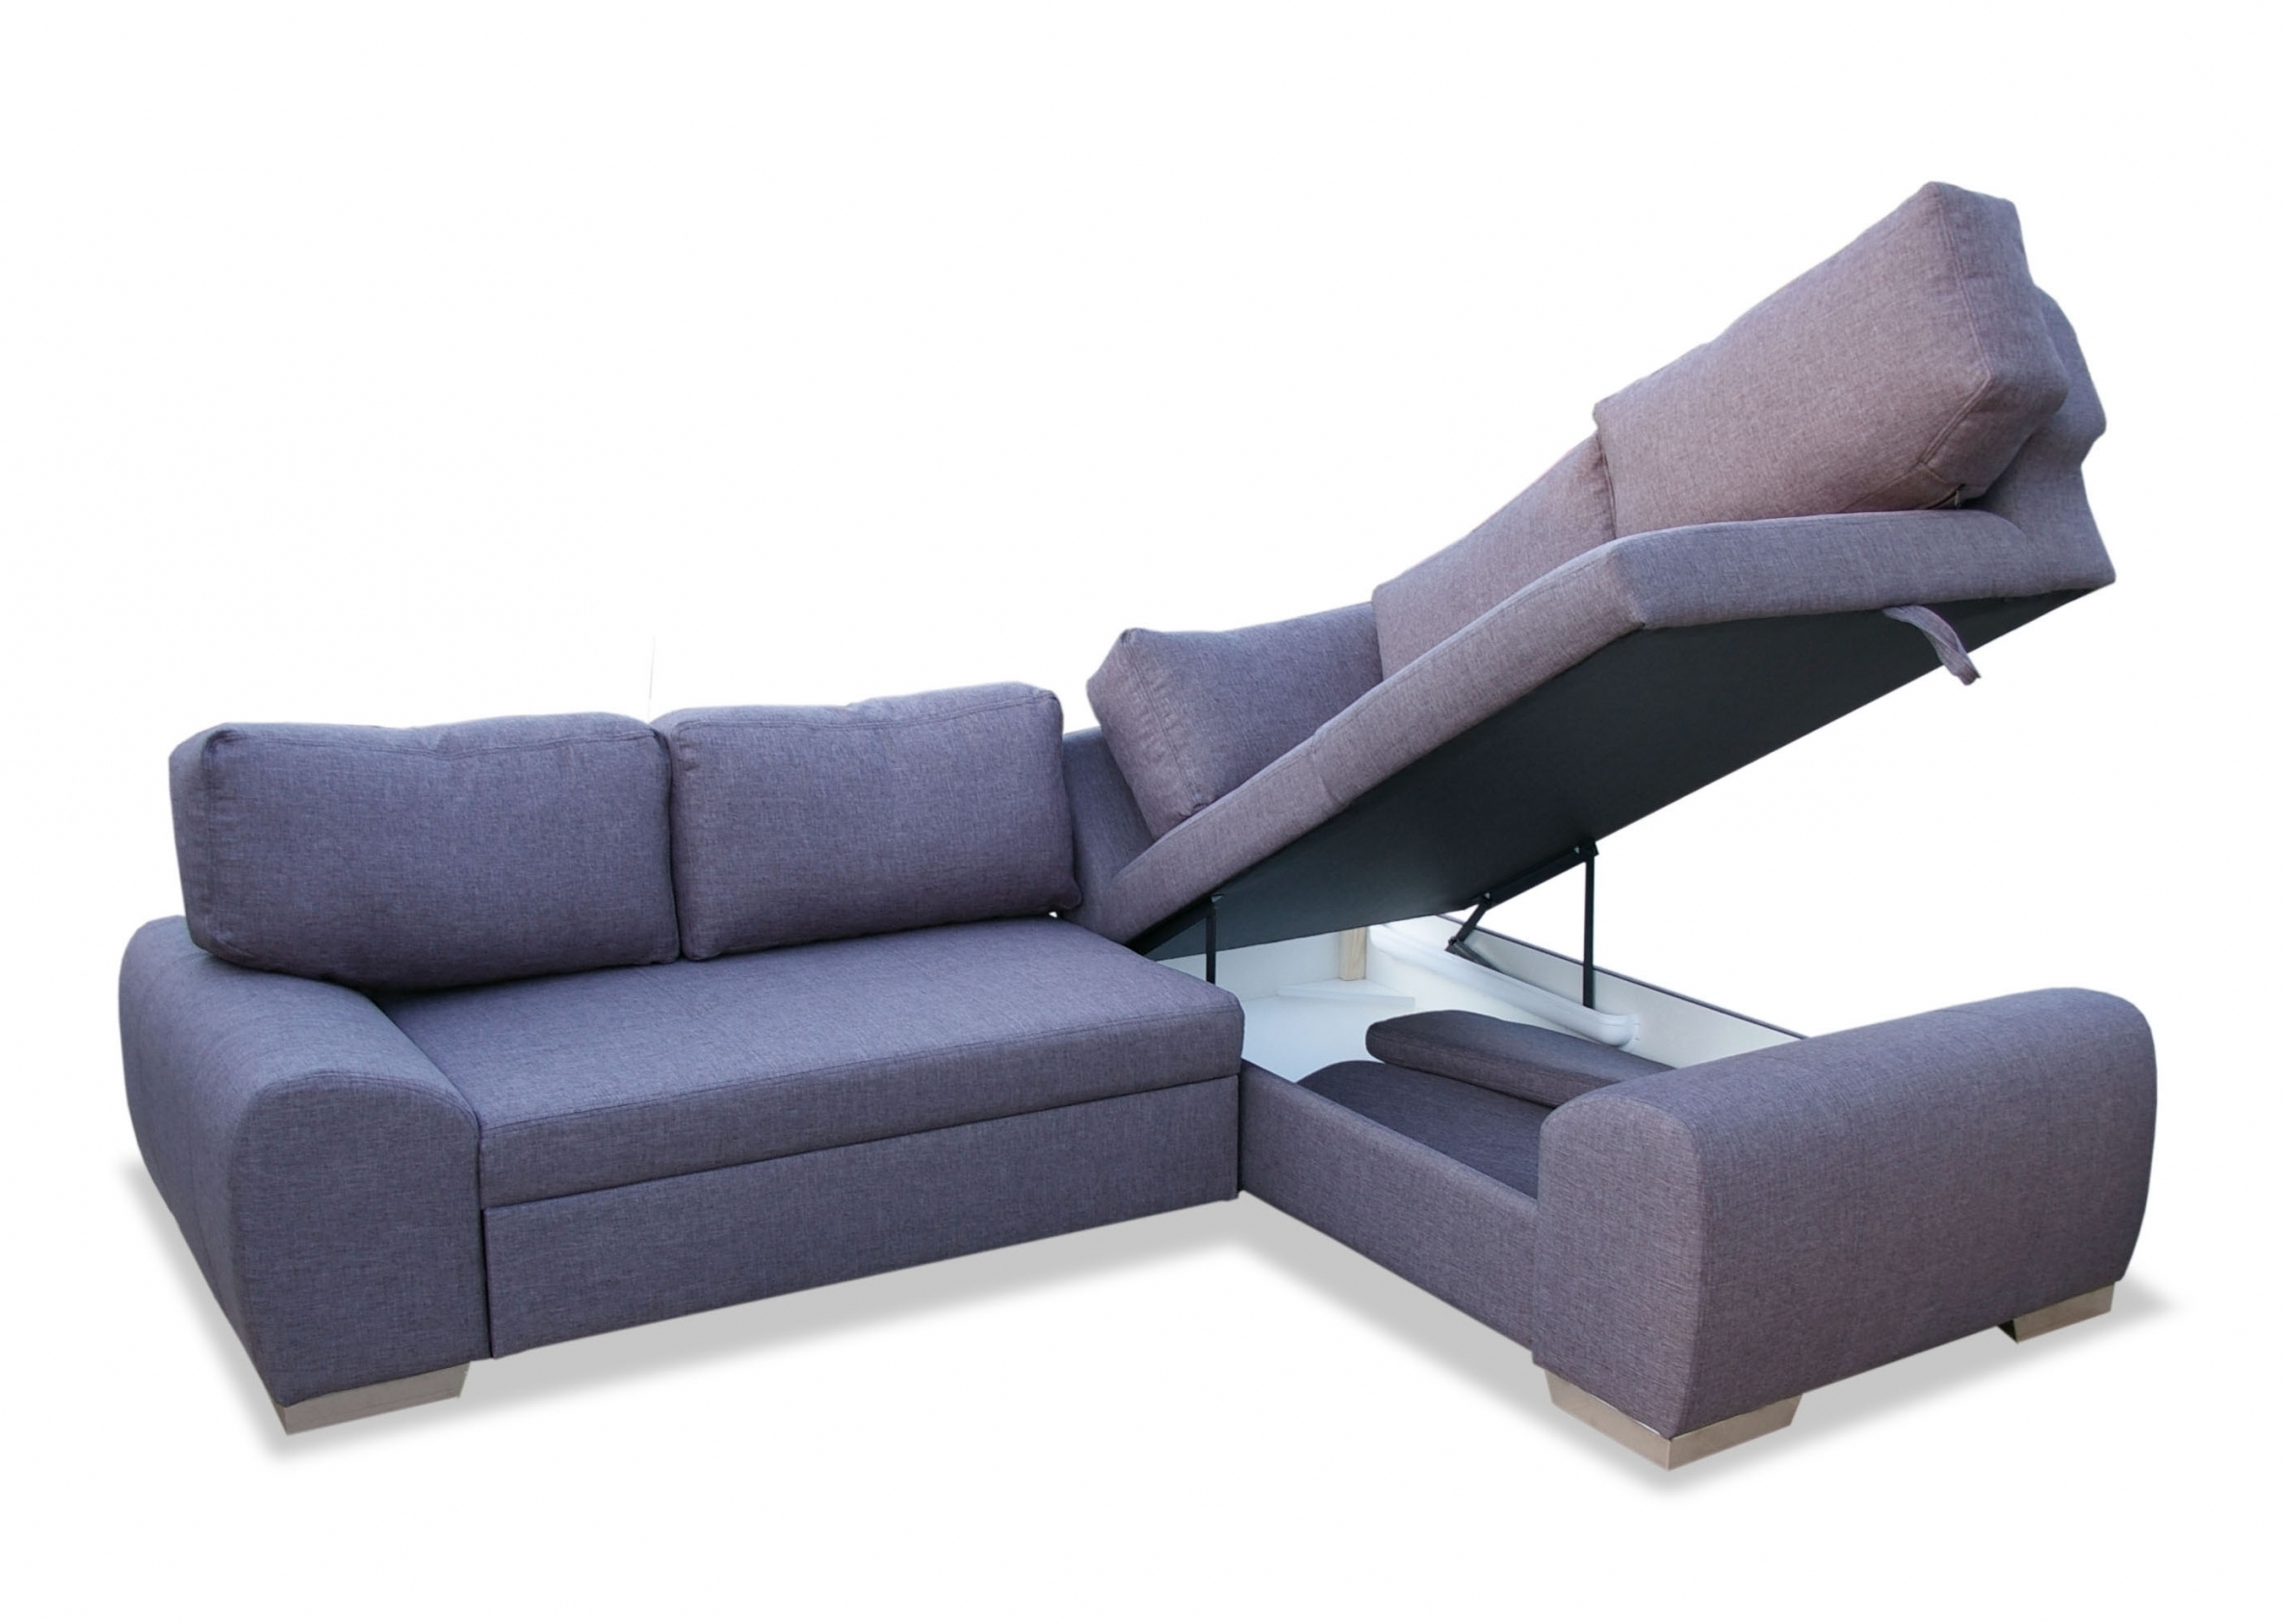 Famous Sectional Sofas With Storage Pertaining To Luxury Sectional Sofa With Storage Lovely – Intuisiblog (View 15 of 20)